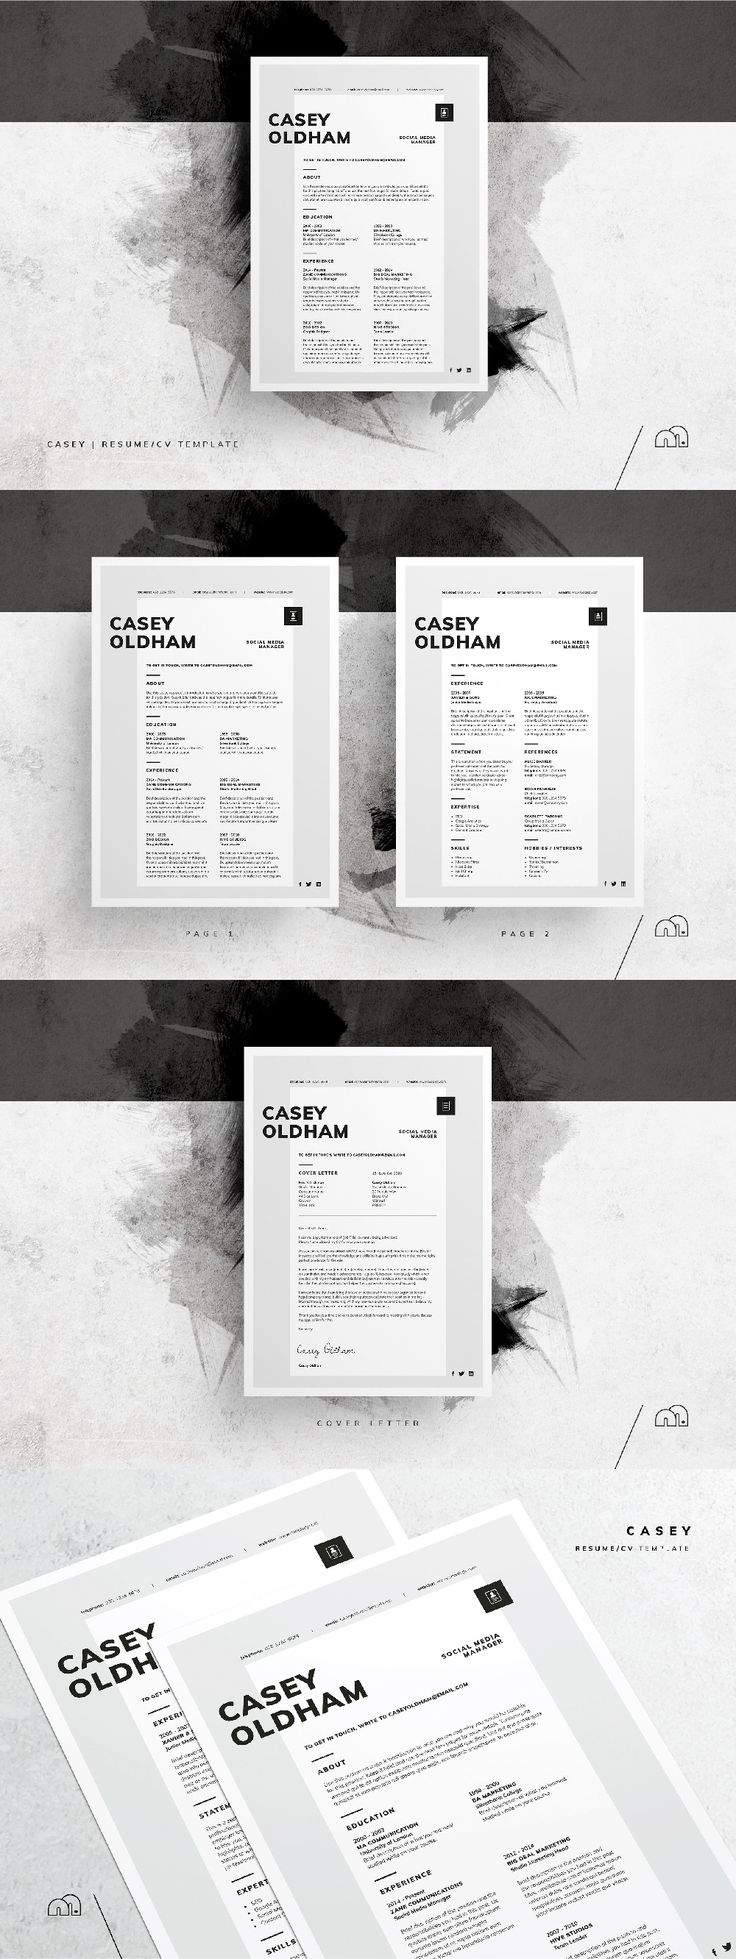 Functional Resume Template Microsoft%0A Resume   CV Template  Casey For those looking for a professional template    u    Casey